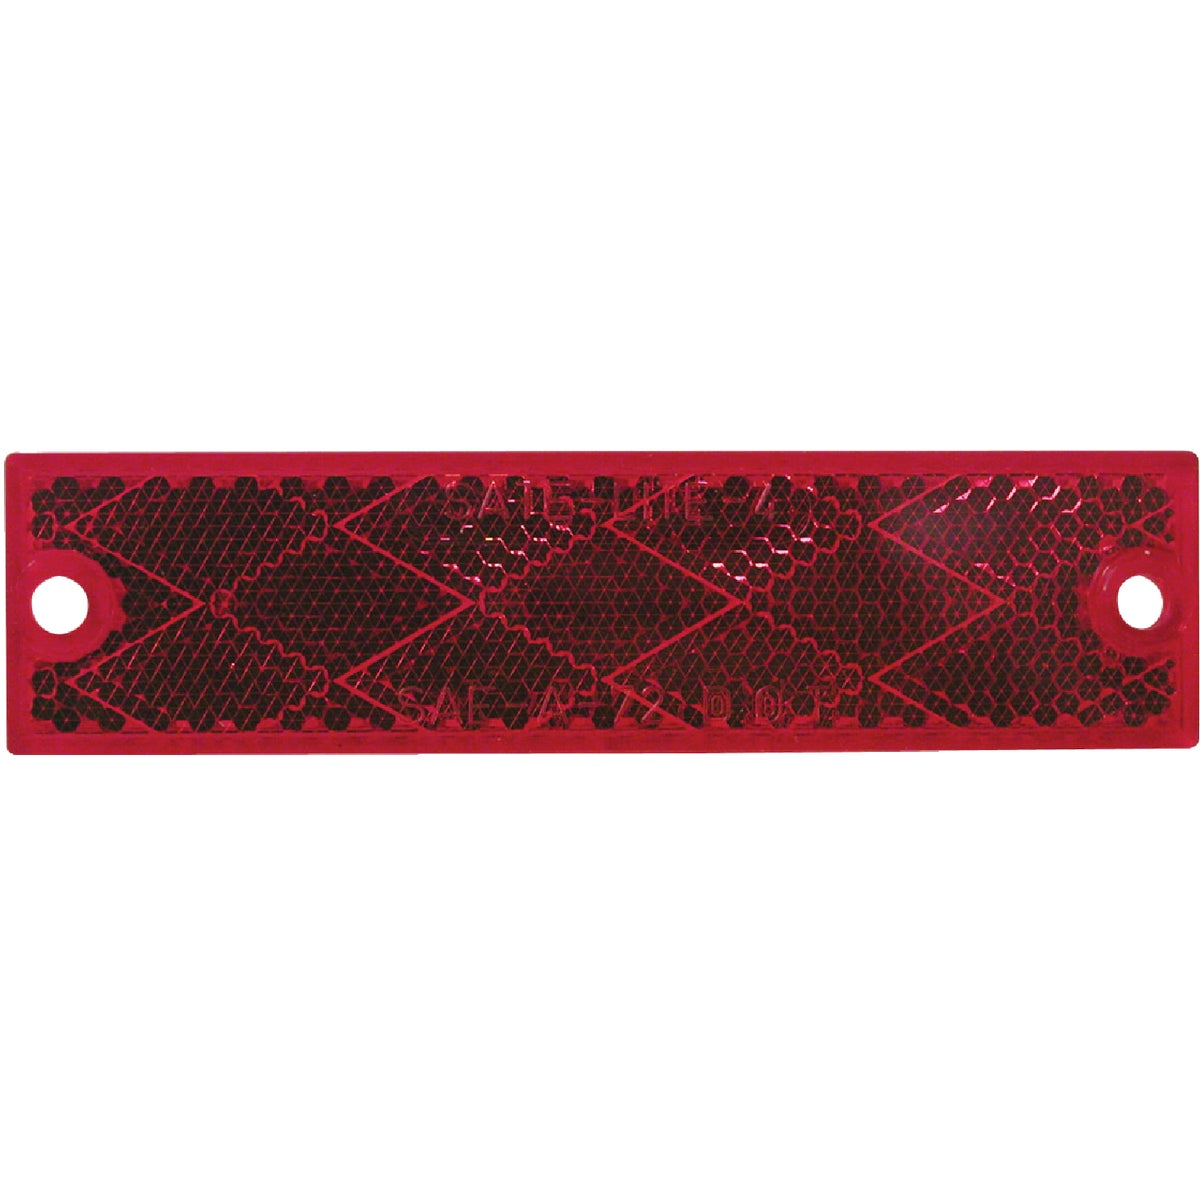 RED RECT REFLECTOR - V487R by Peterson Mfg Co